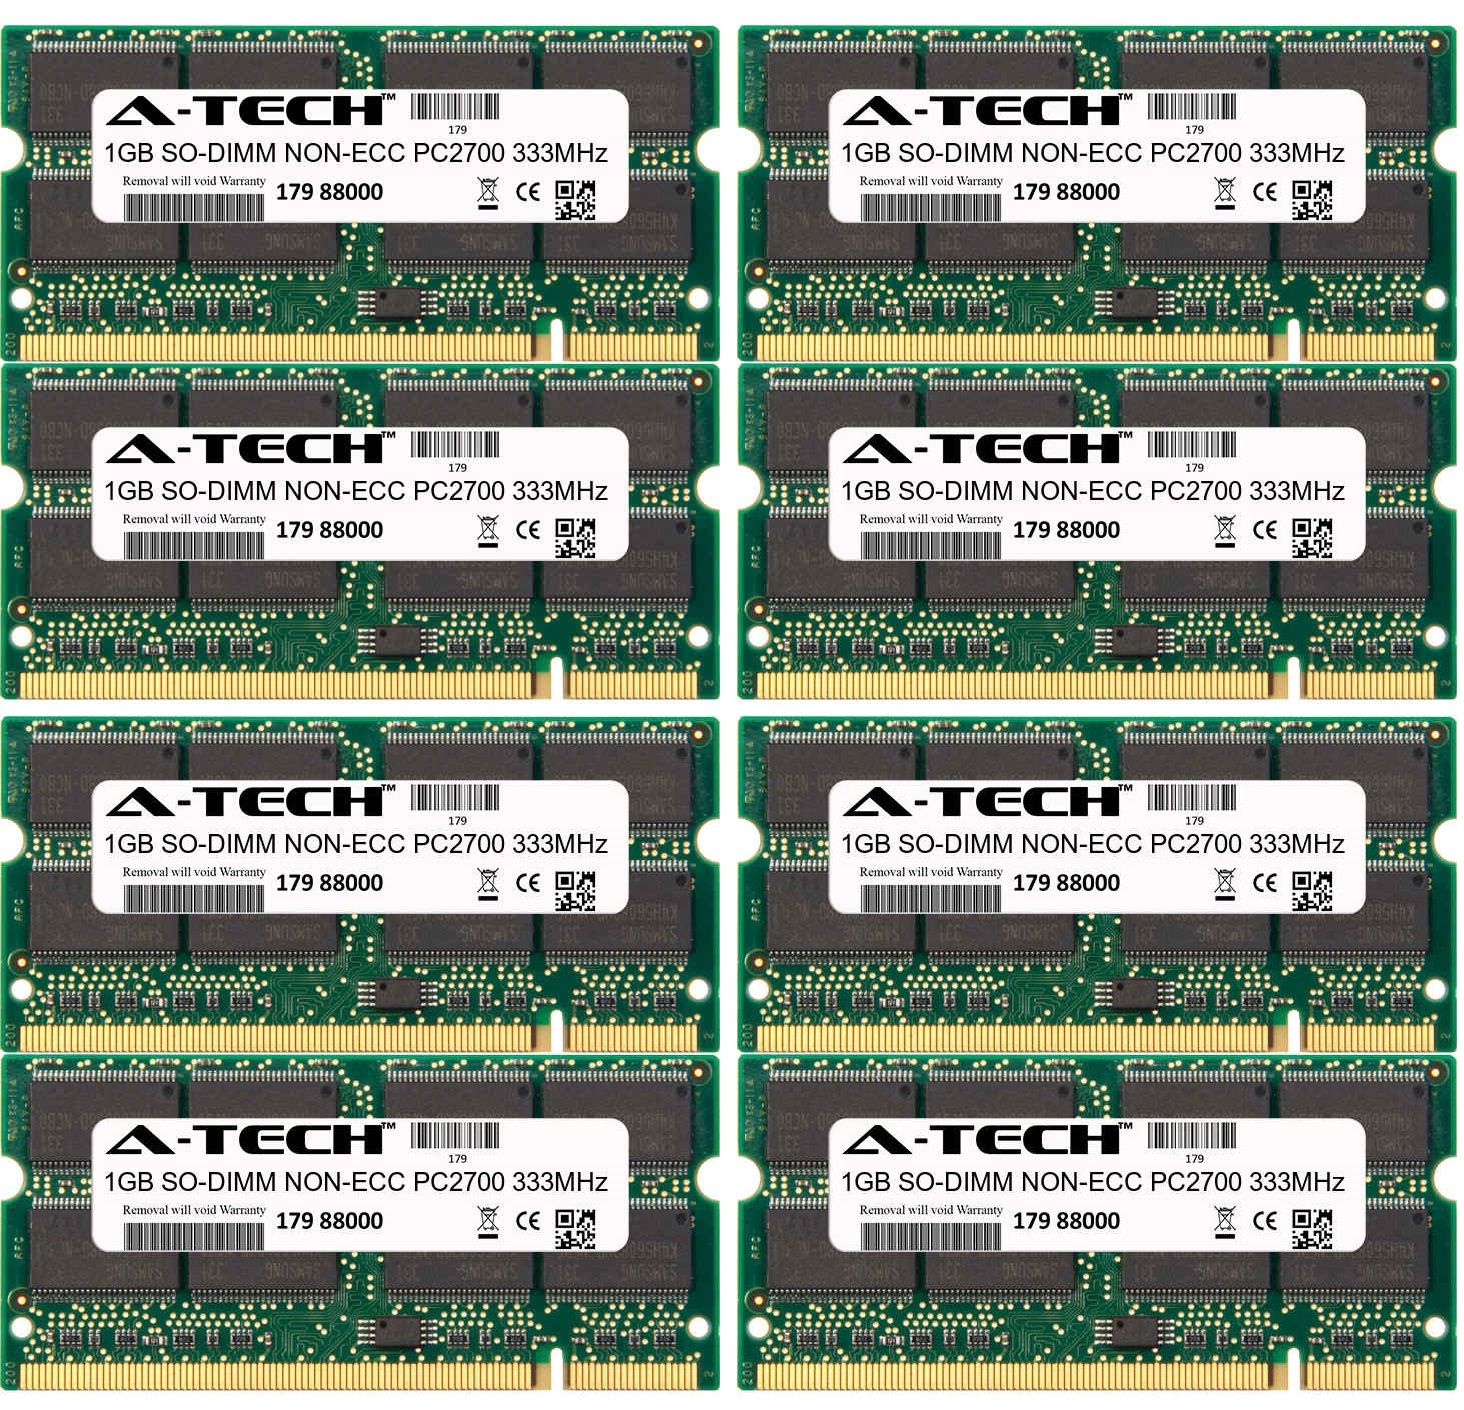 8GB Kit 8x 1GB Modules PC2700 333MHz NON-ECC DDR SO-DIMM ...